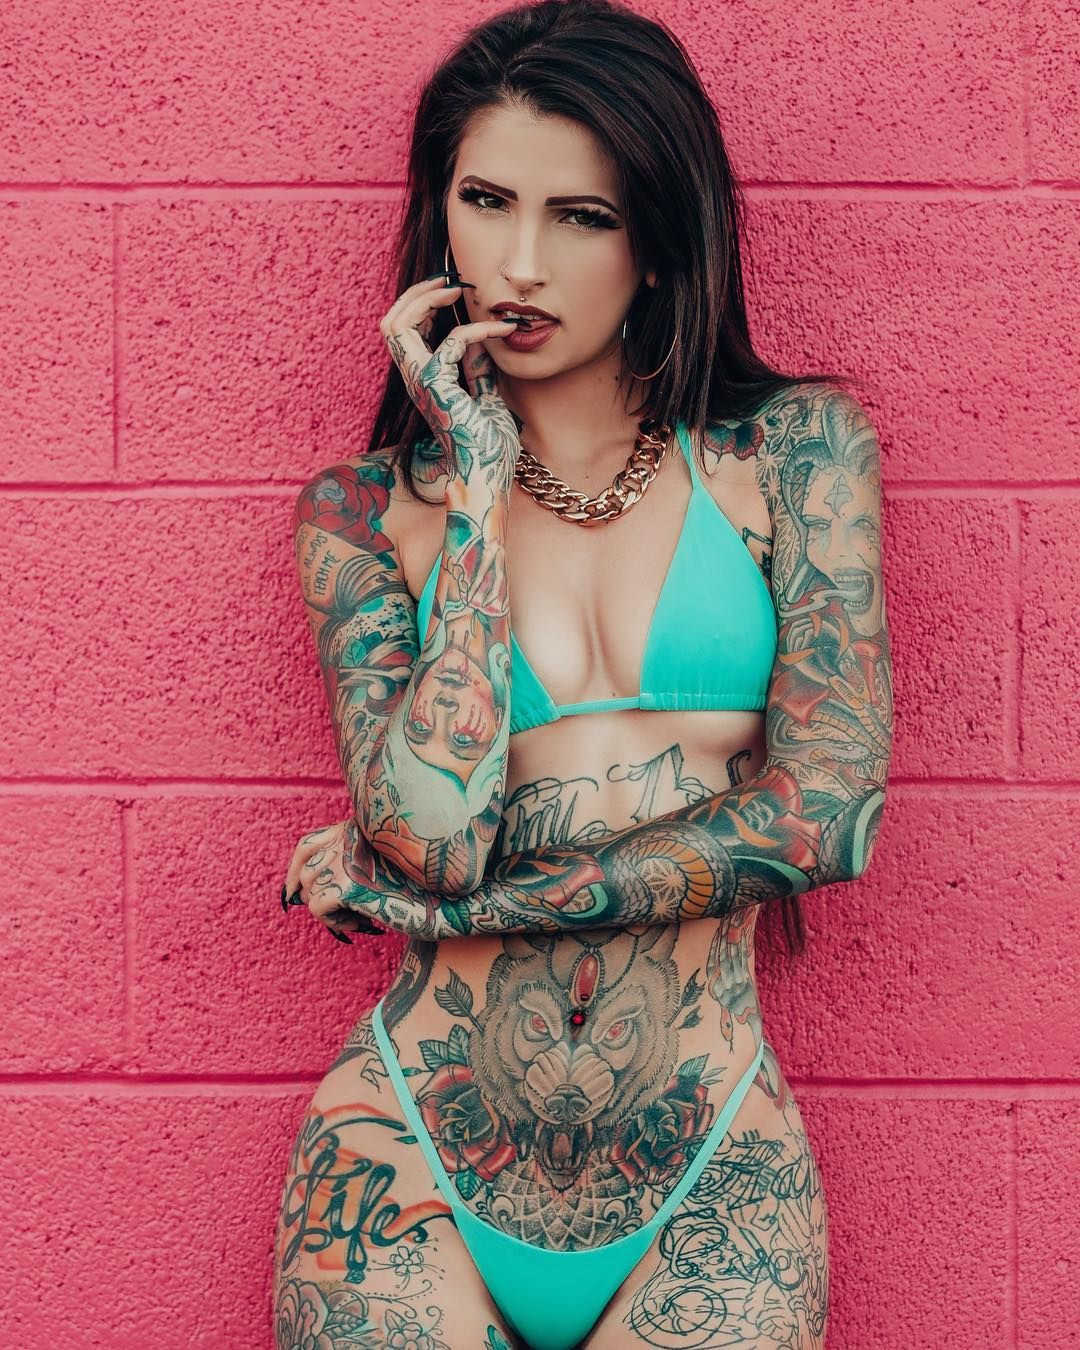 hot-tattoo-women-pussy-short-girl-nude-self-shot